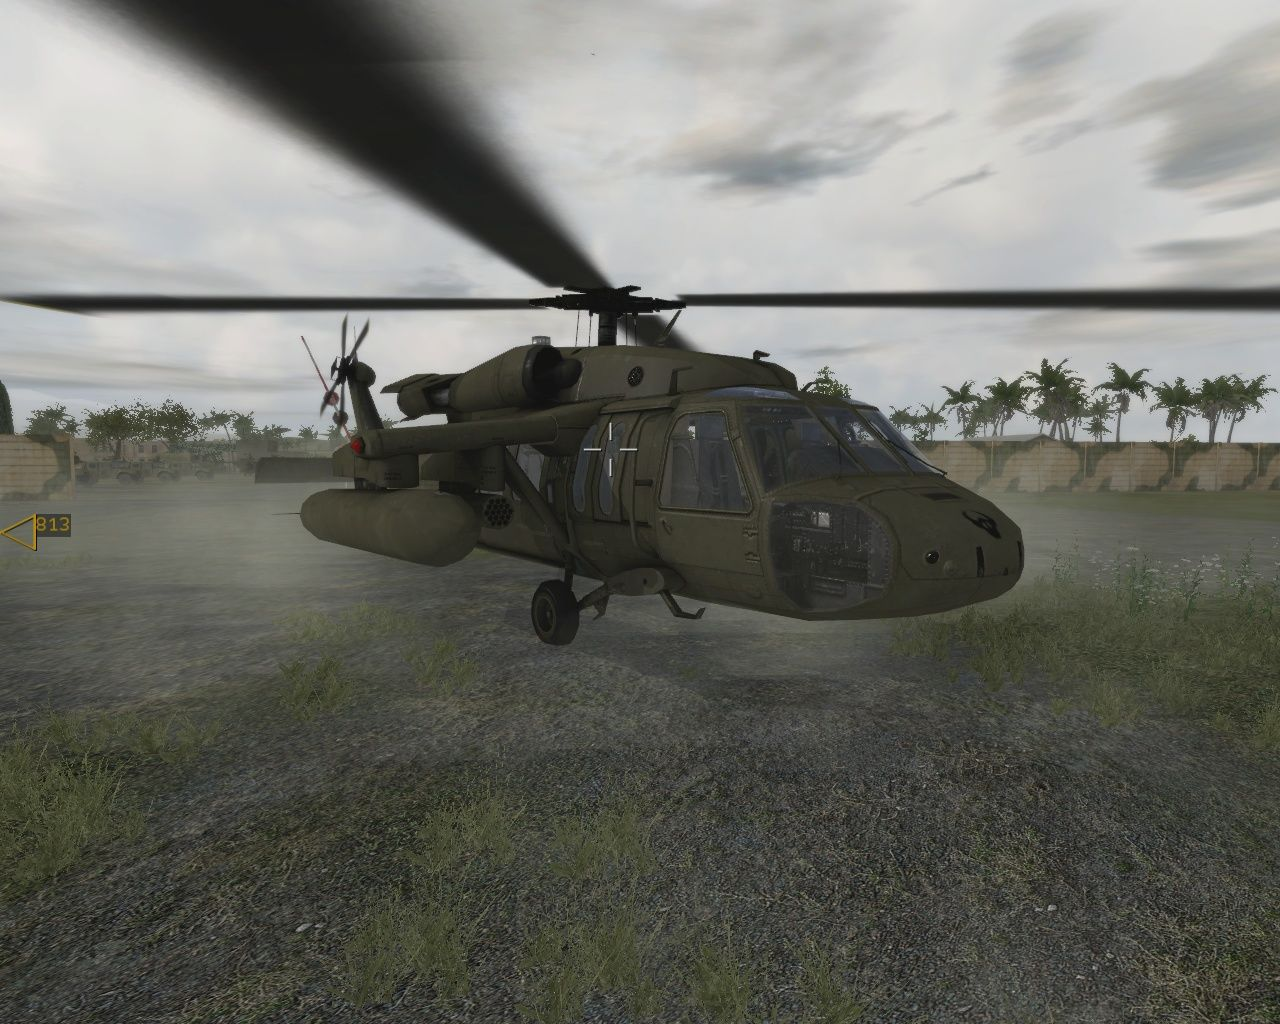 ArmA: Combat Operations Windows Isn't she a beauty? The Sikorsky UH-60 transport helicopter or short: Blackhawk.